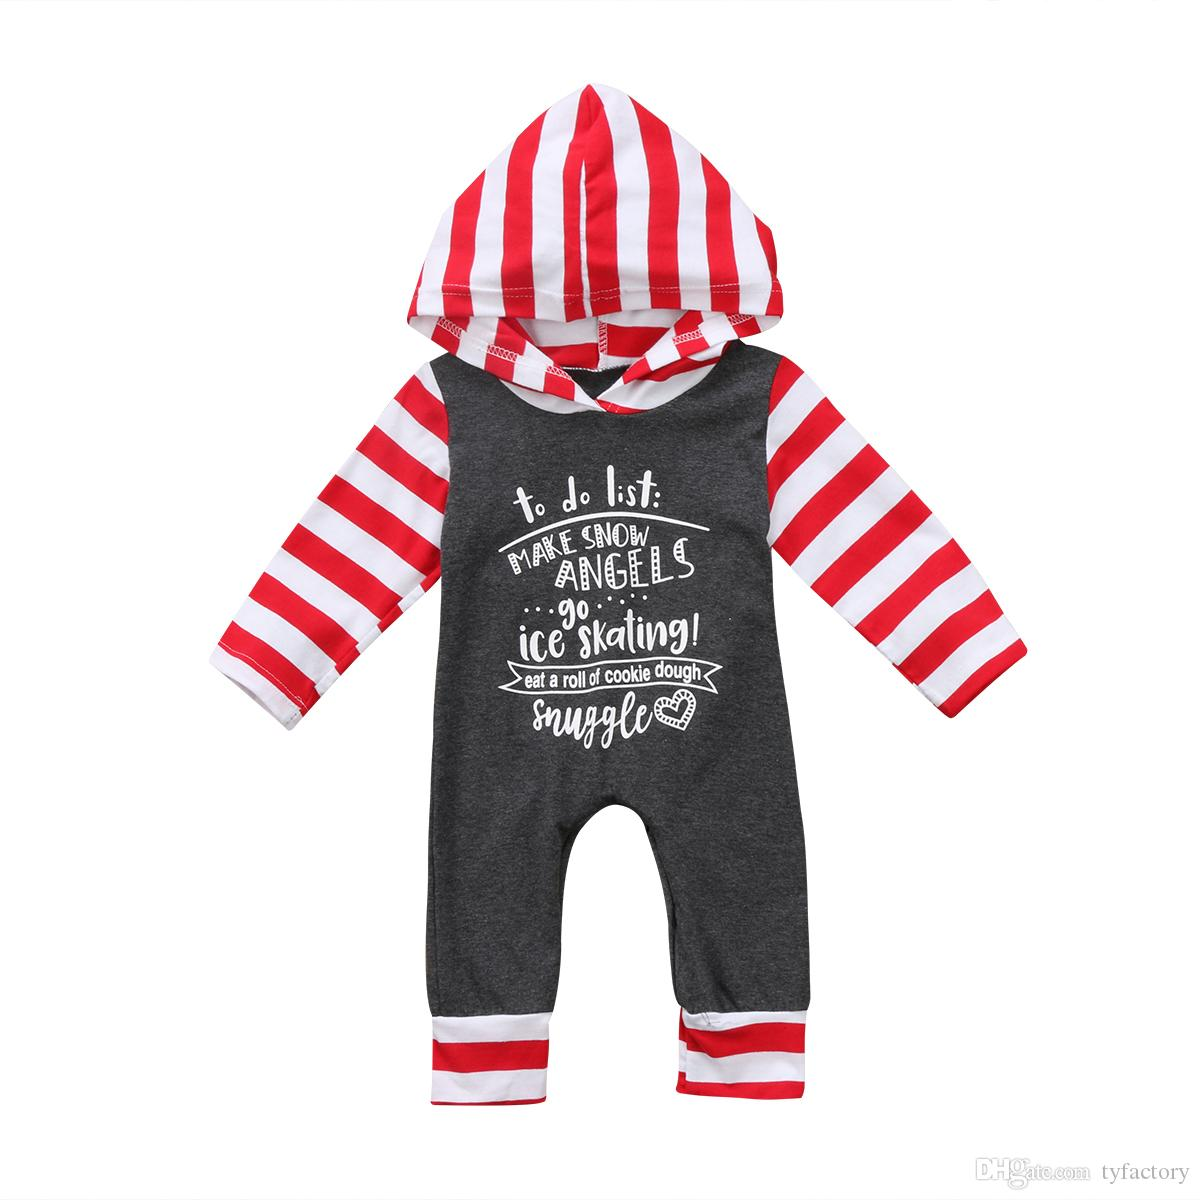 19c82c50108ec 2018 Christmas Newborn Baby Boys Girls Gray Striped Hooded Romper Long  Sleeve Bodysuit Jumpsuit Letter Print Kid Clothes Outfit 0-24M Newborn Baby  Boy ...